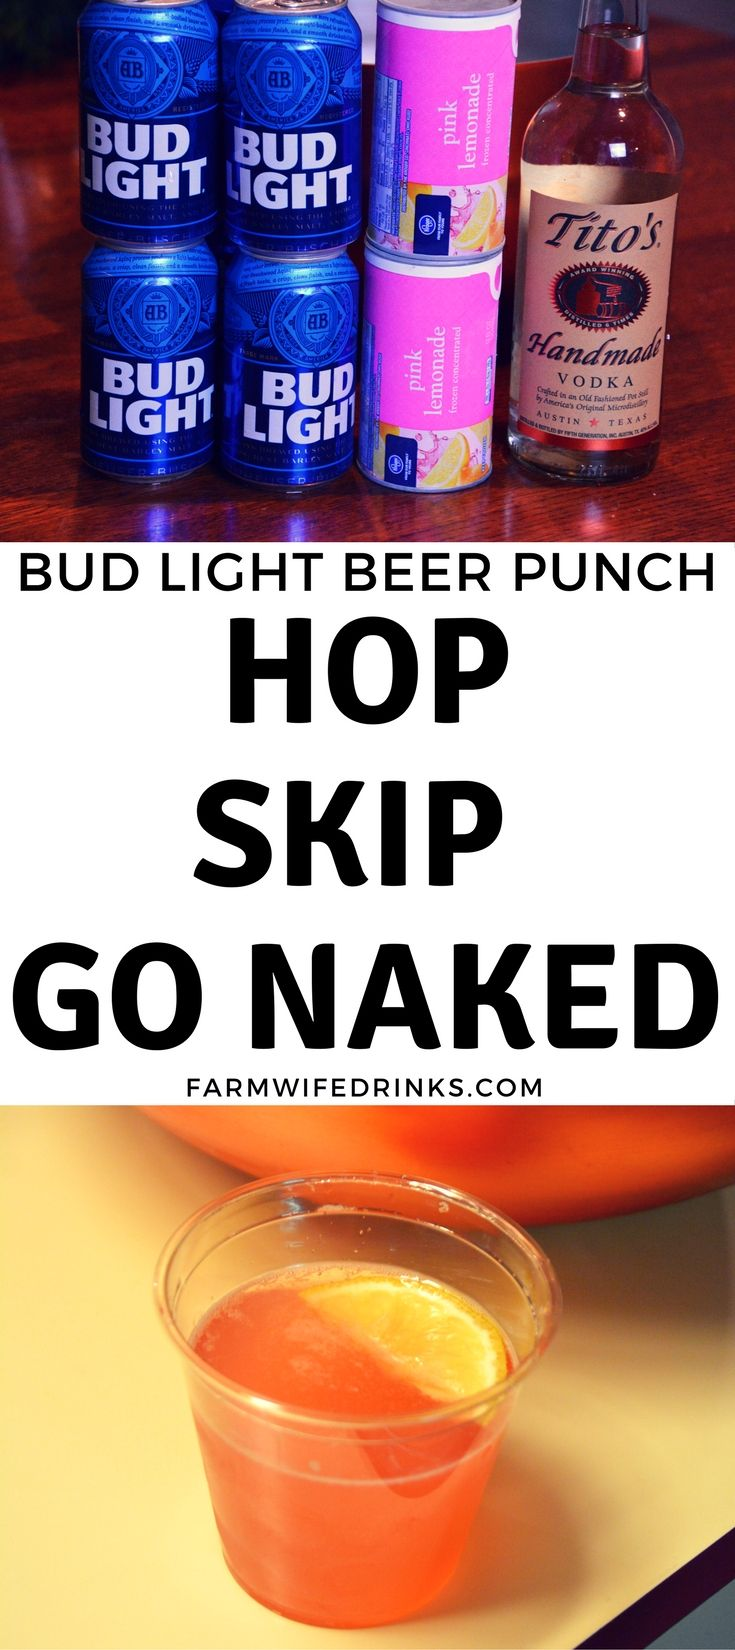 H is for: Hop, Skip and Go {Naked}